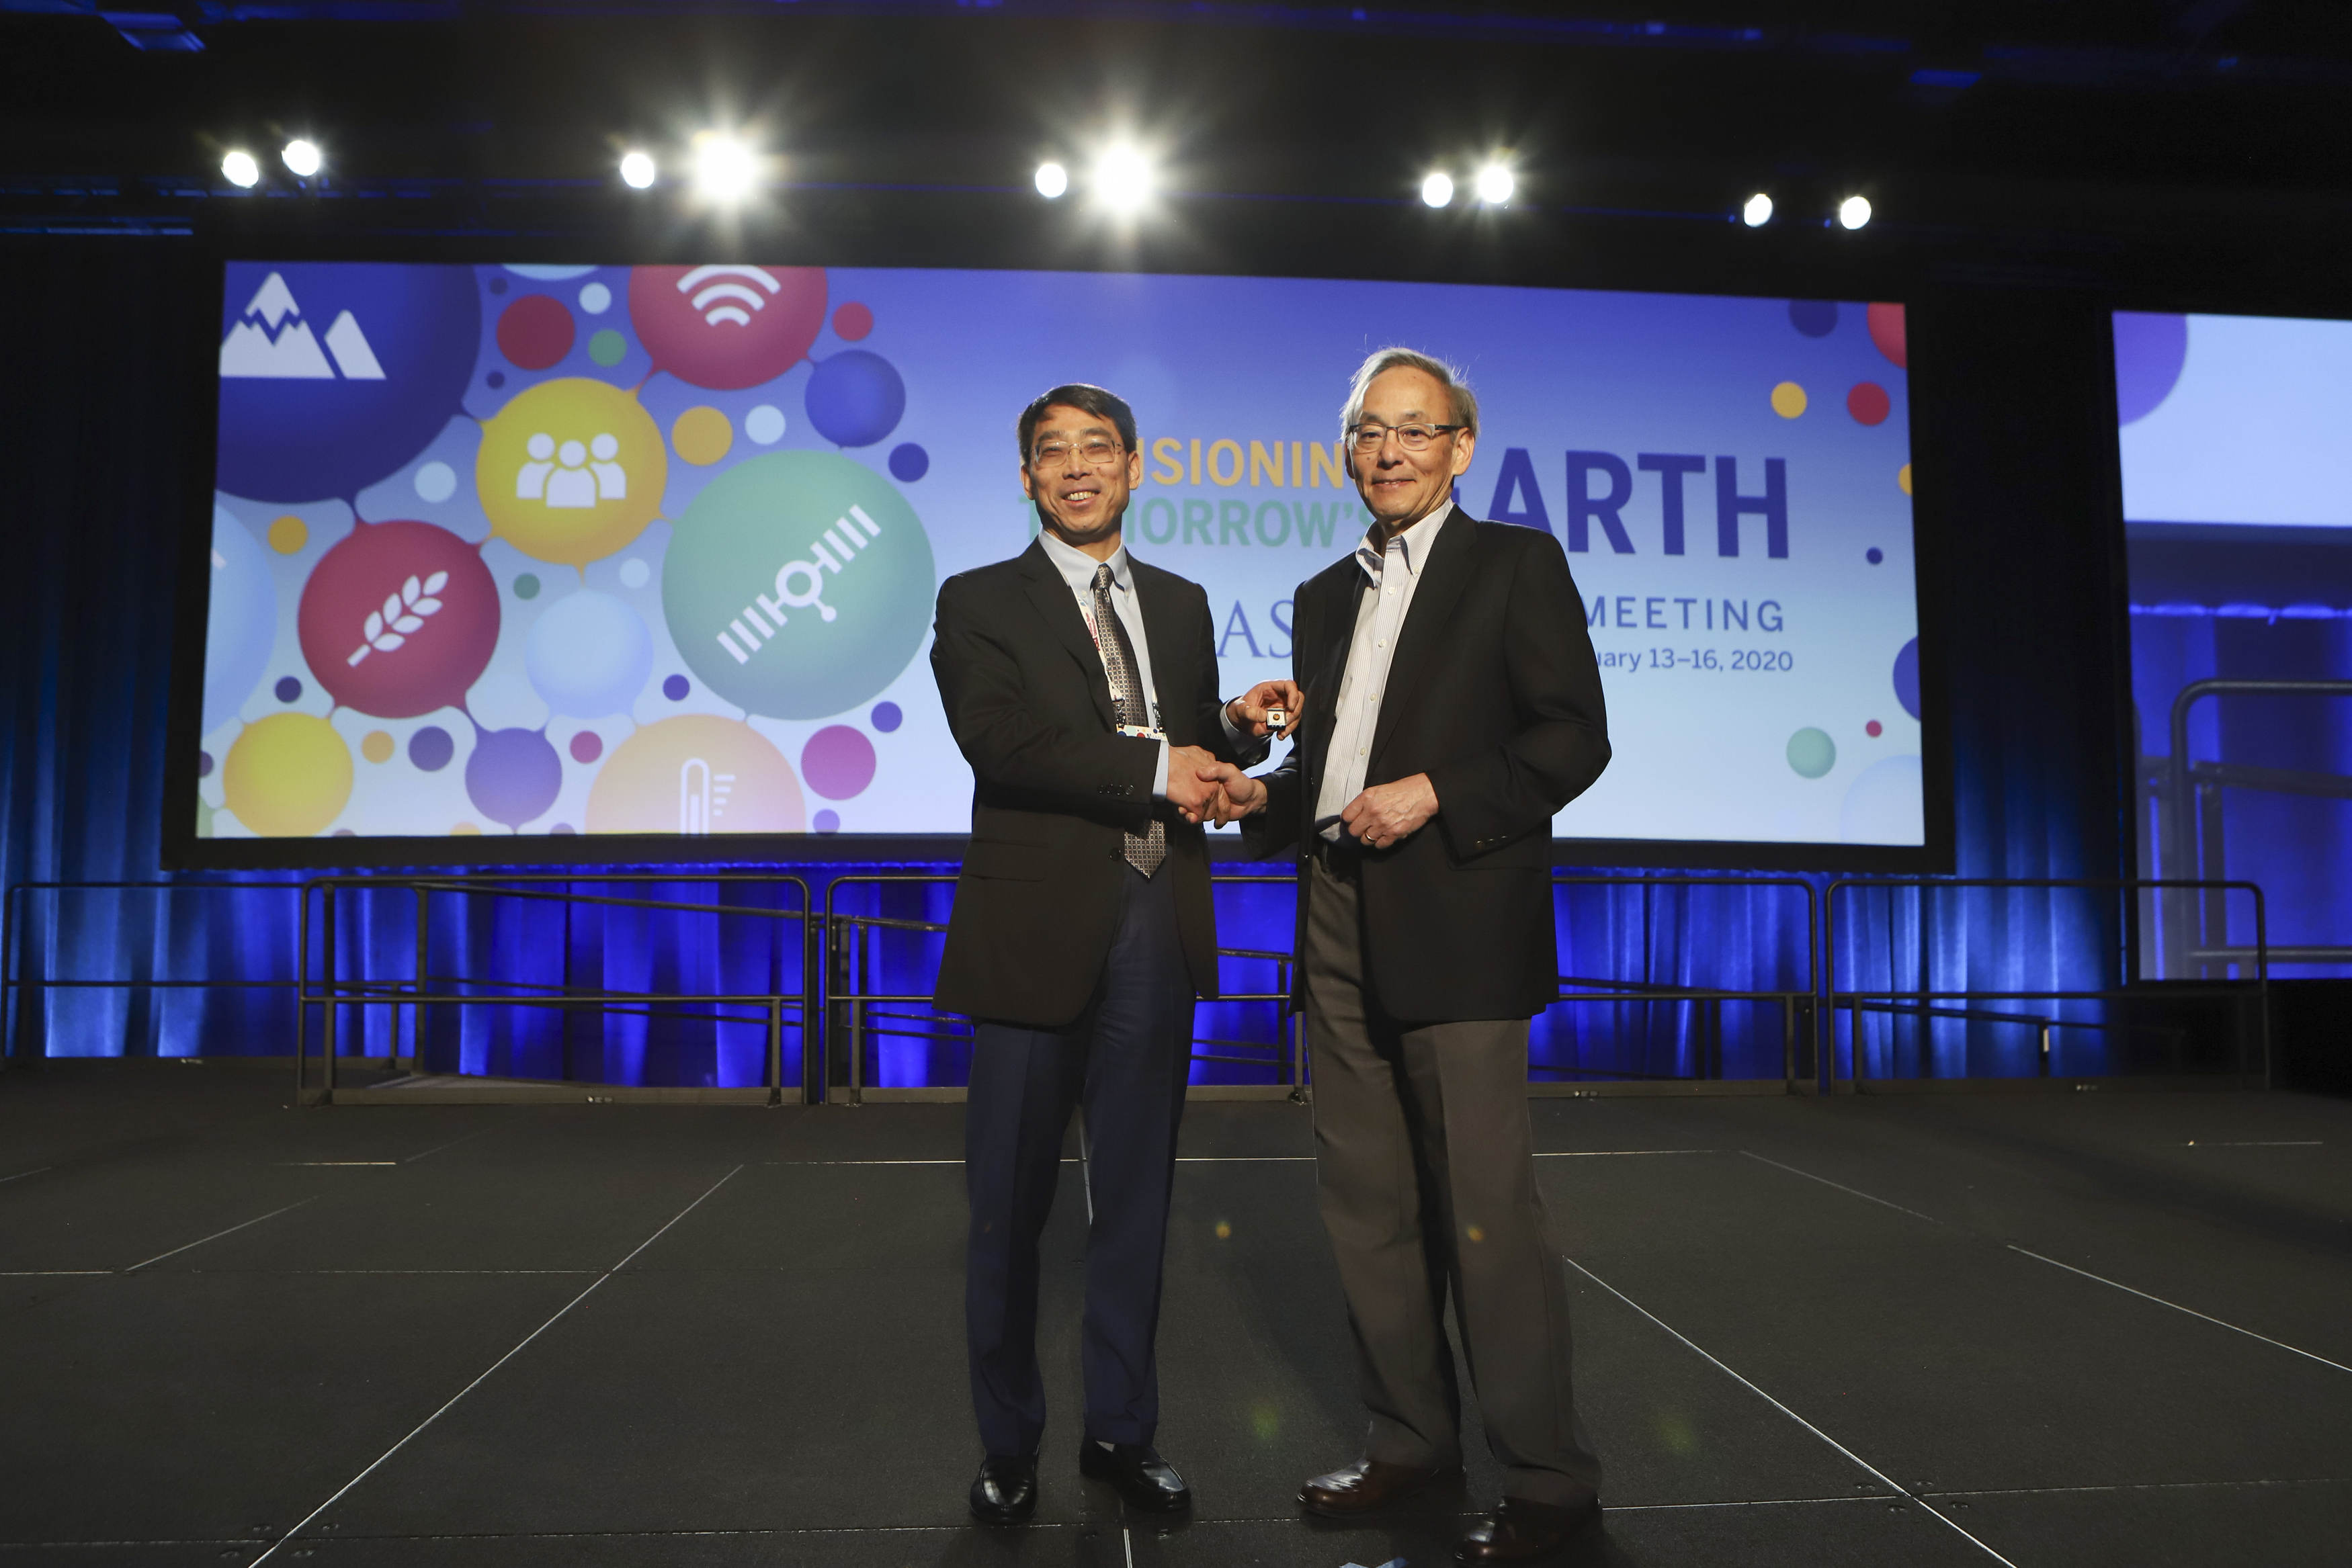 Shaomeng Wang (left) pictured with Steven Chu (right), the 2019-2020 AAAS president